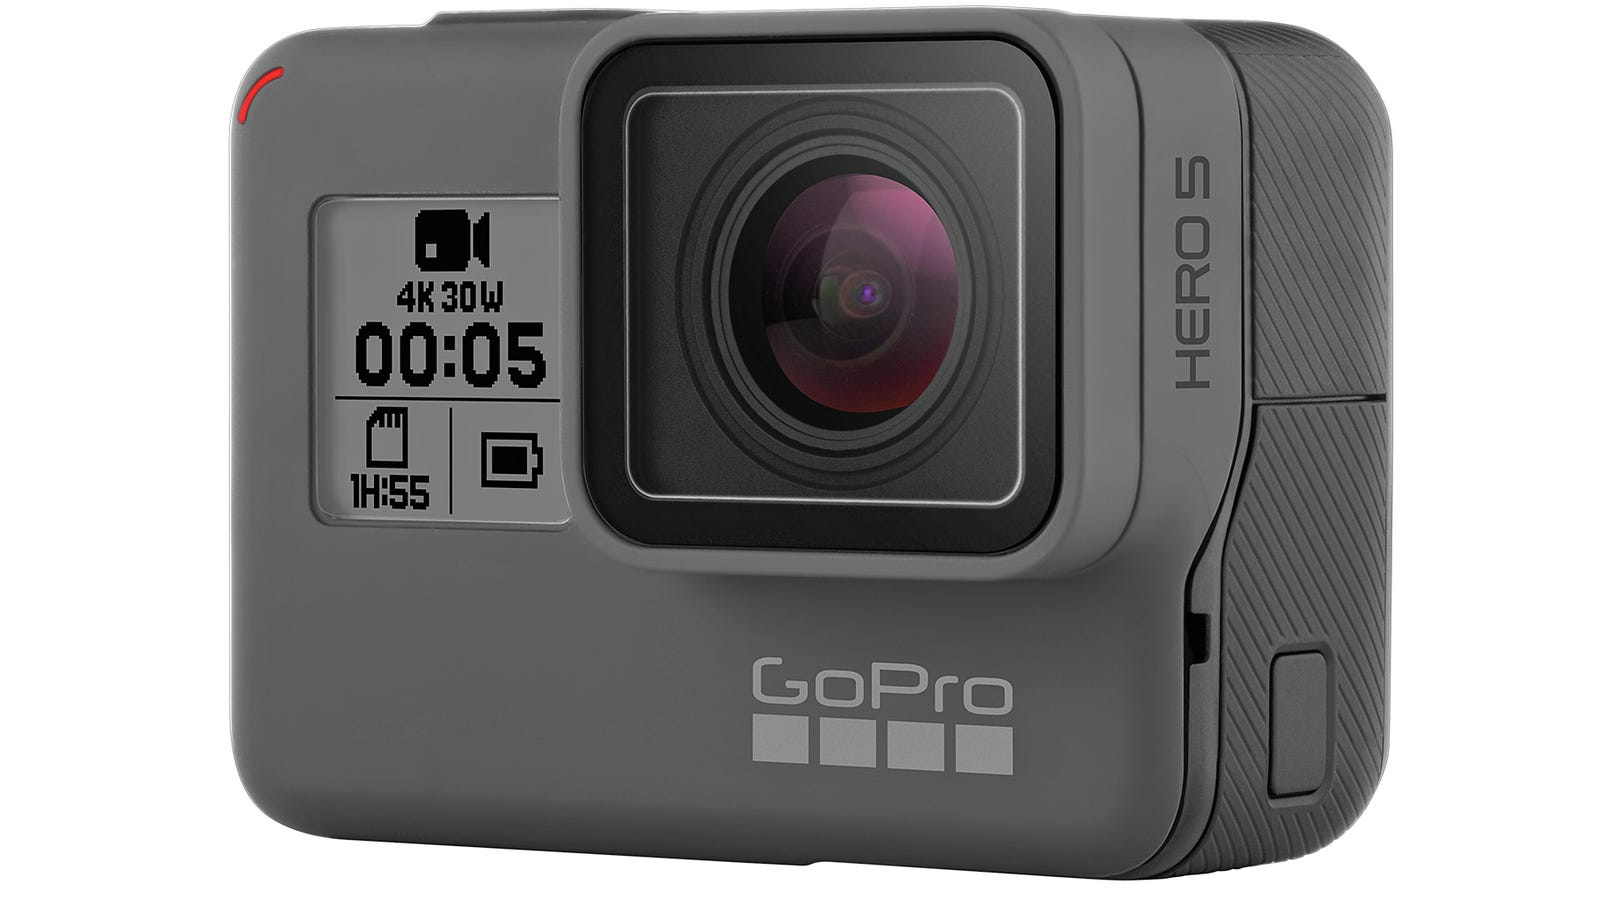 The GoPro Hero5 Is Finally Waterproof and Listens to Your Voice Commands